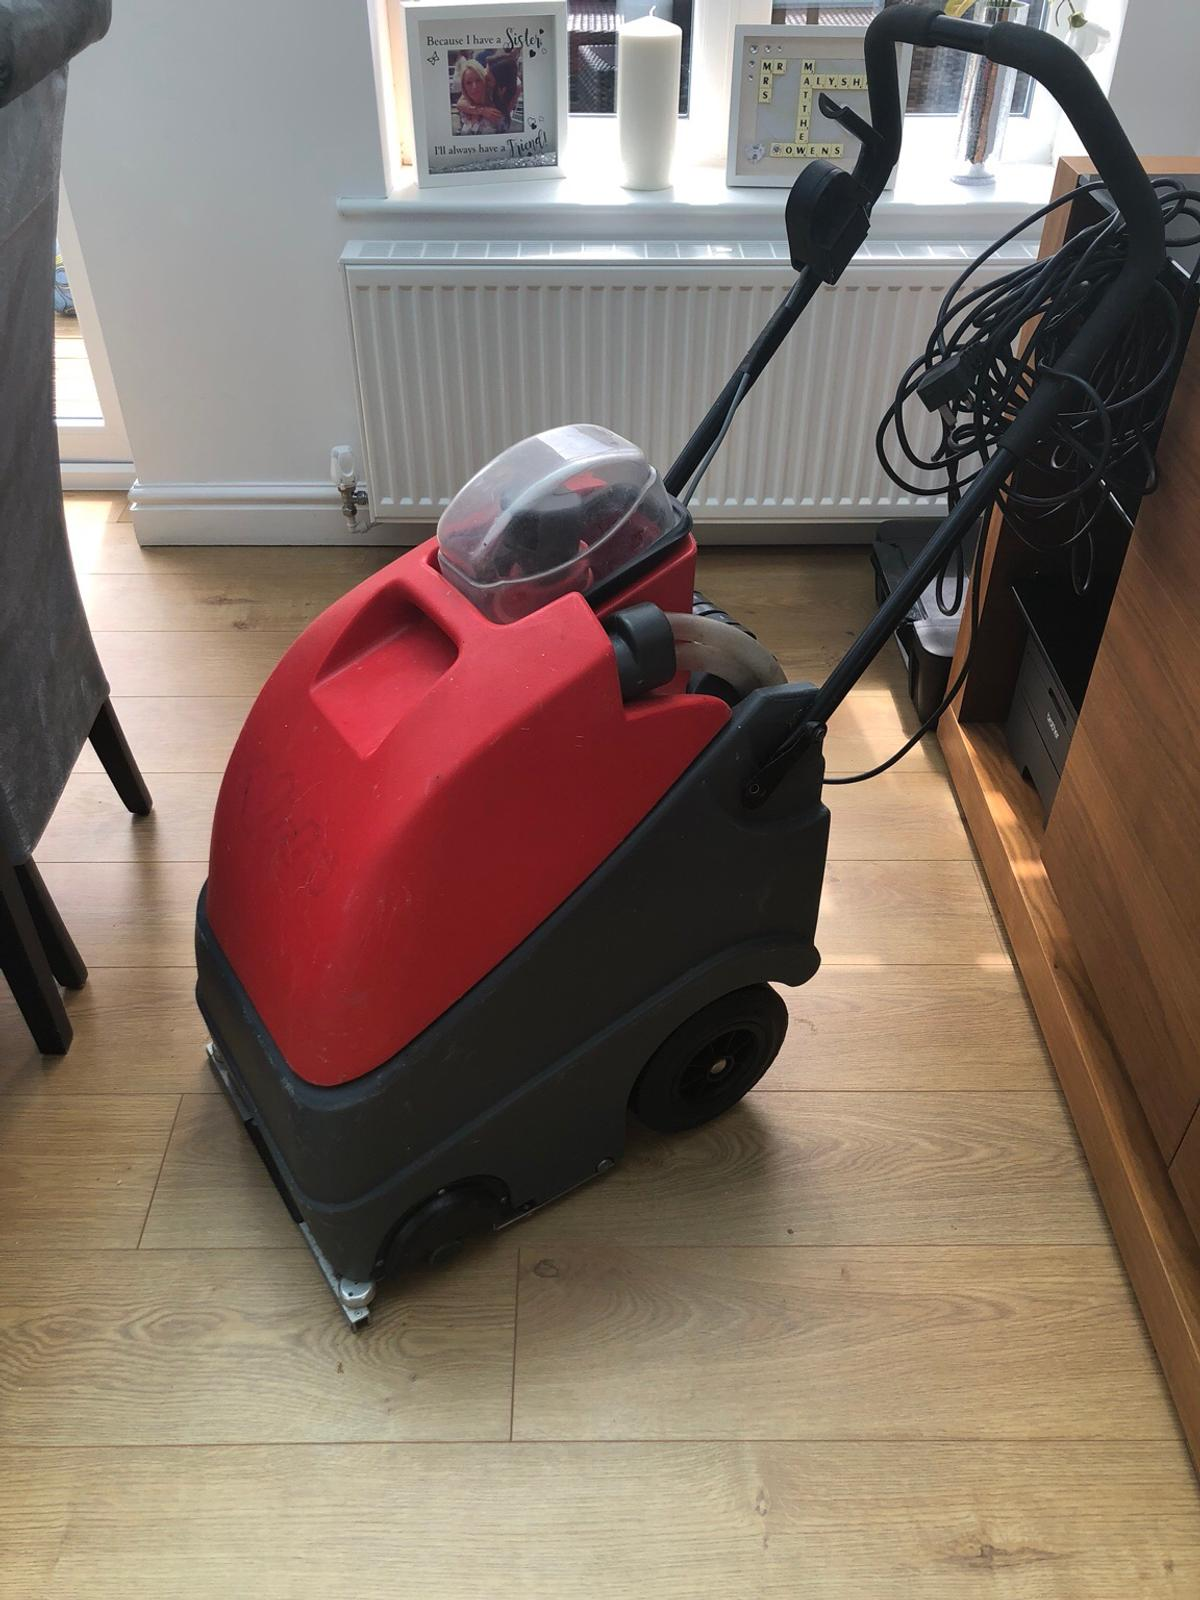 Victor Sx15 Carpet Cleaning Machine In Np12 Blackwood For